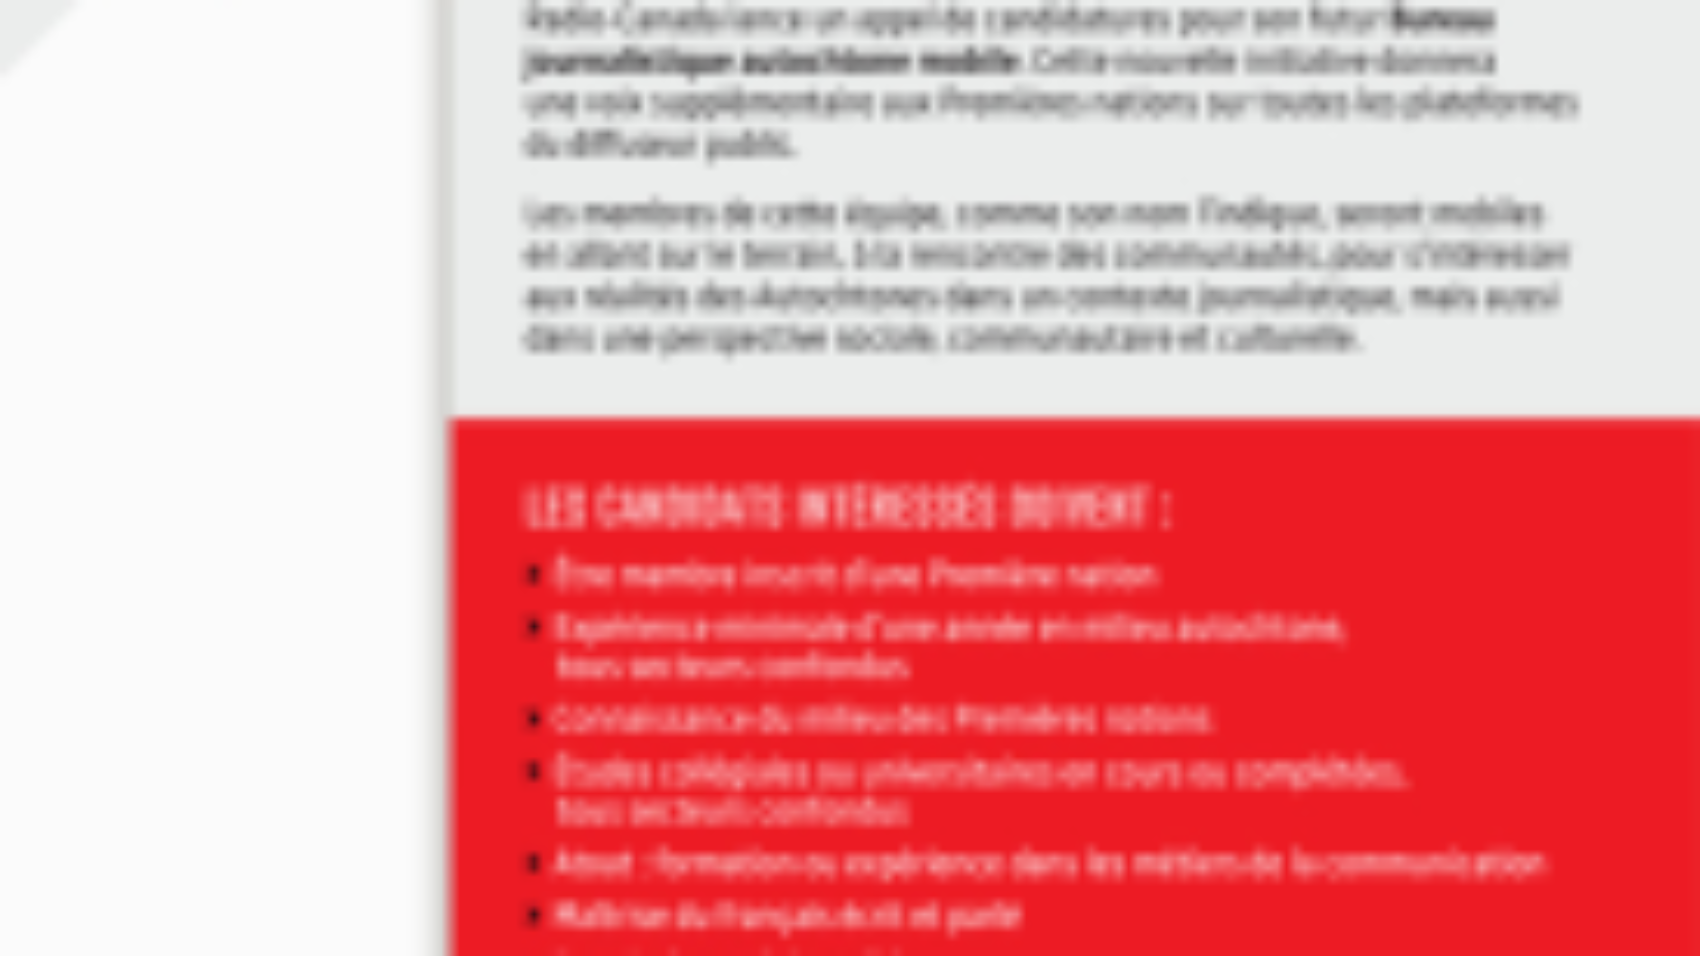 RC_Appel-candidature_bureau-journalistique-autochtone-622x1024